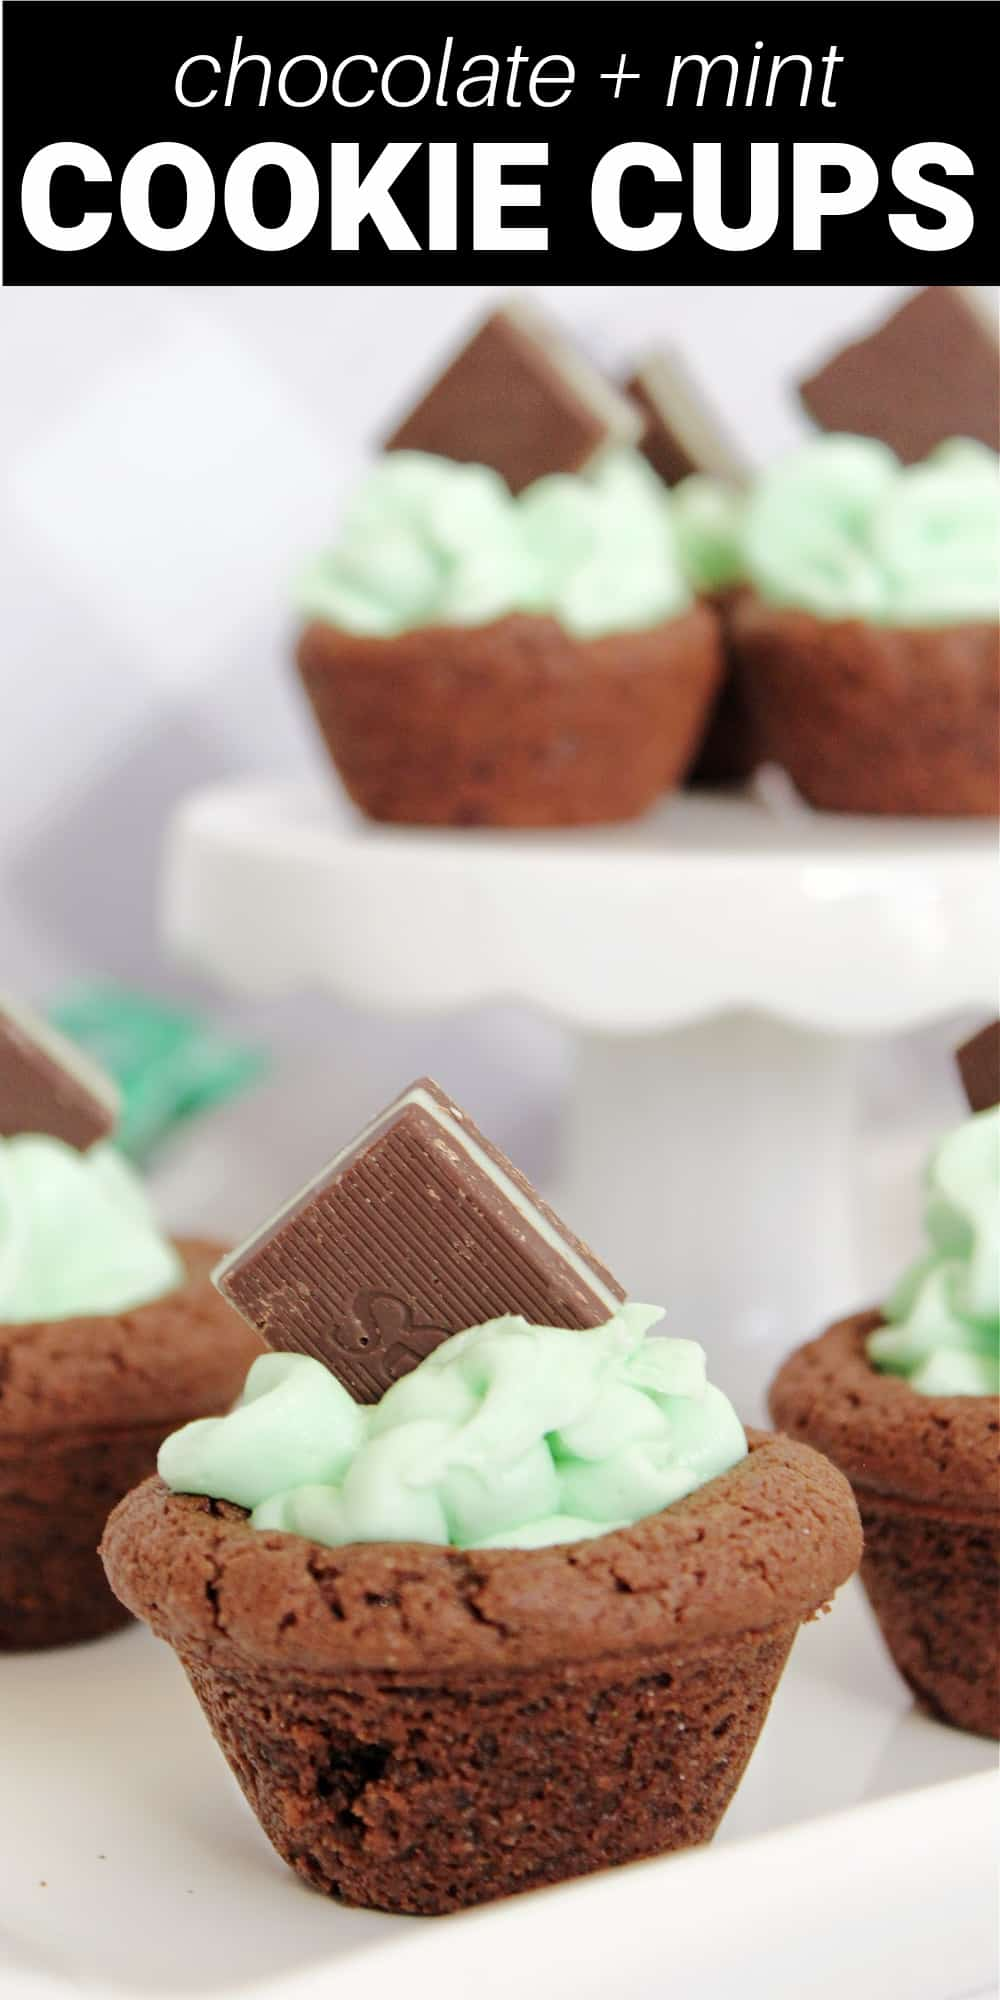 Chocolate mint cookie cups are a simple chocolate cookie dough pressed into a mini-muffin pan making a hole to fill with creamy mint buttercream frosting. Topped with an Andes mint, these are a cute chocolate mint dessert.